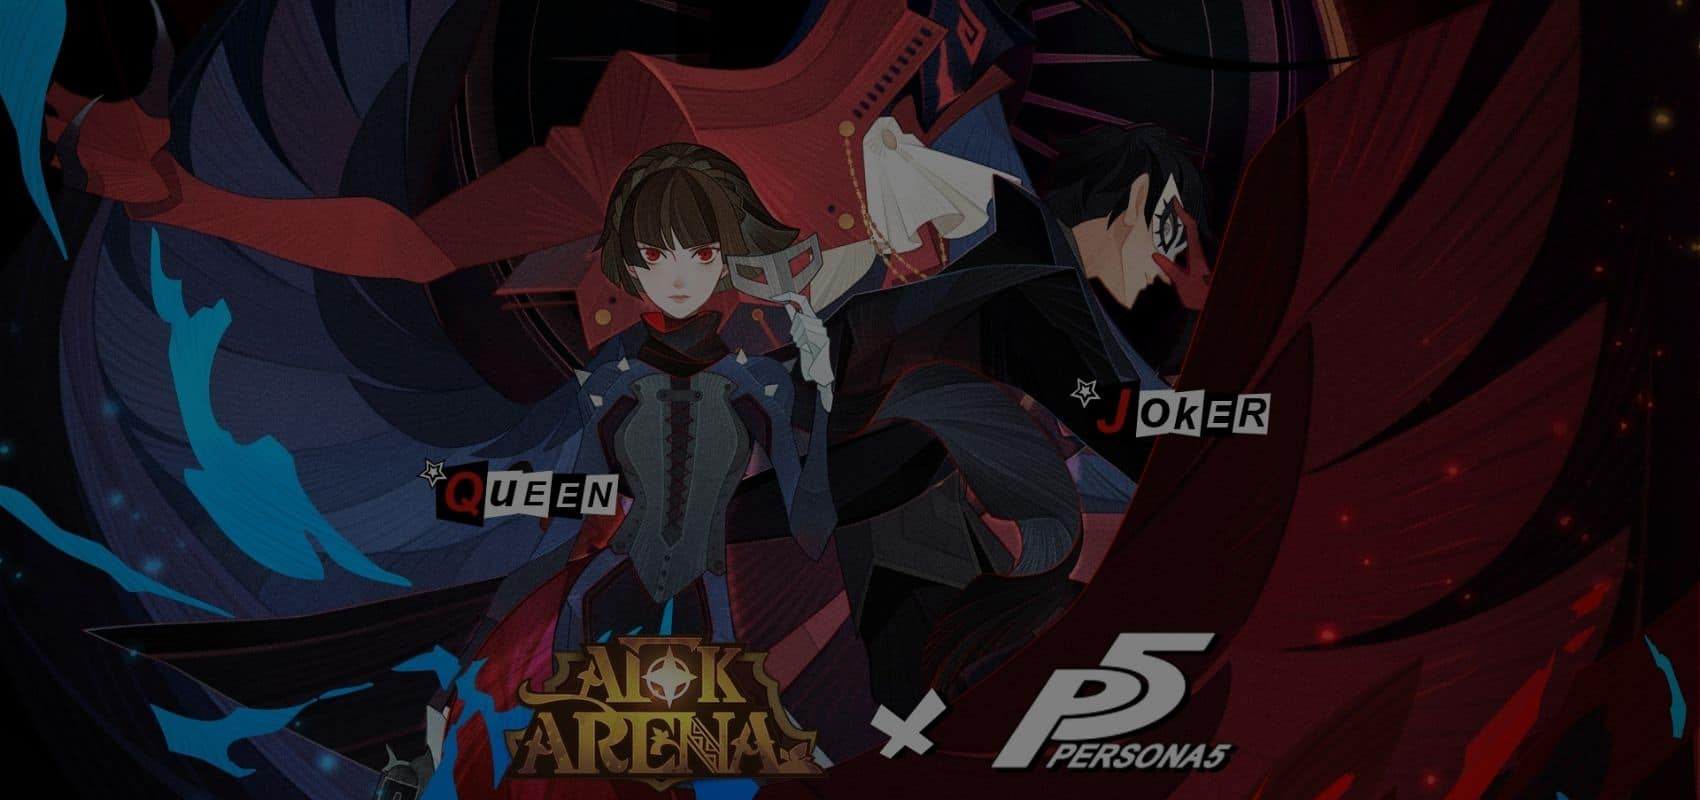 The Phantom Thieves escape PERSONA5 and join the epic Hero line-up in AFK Arena